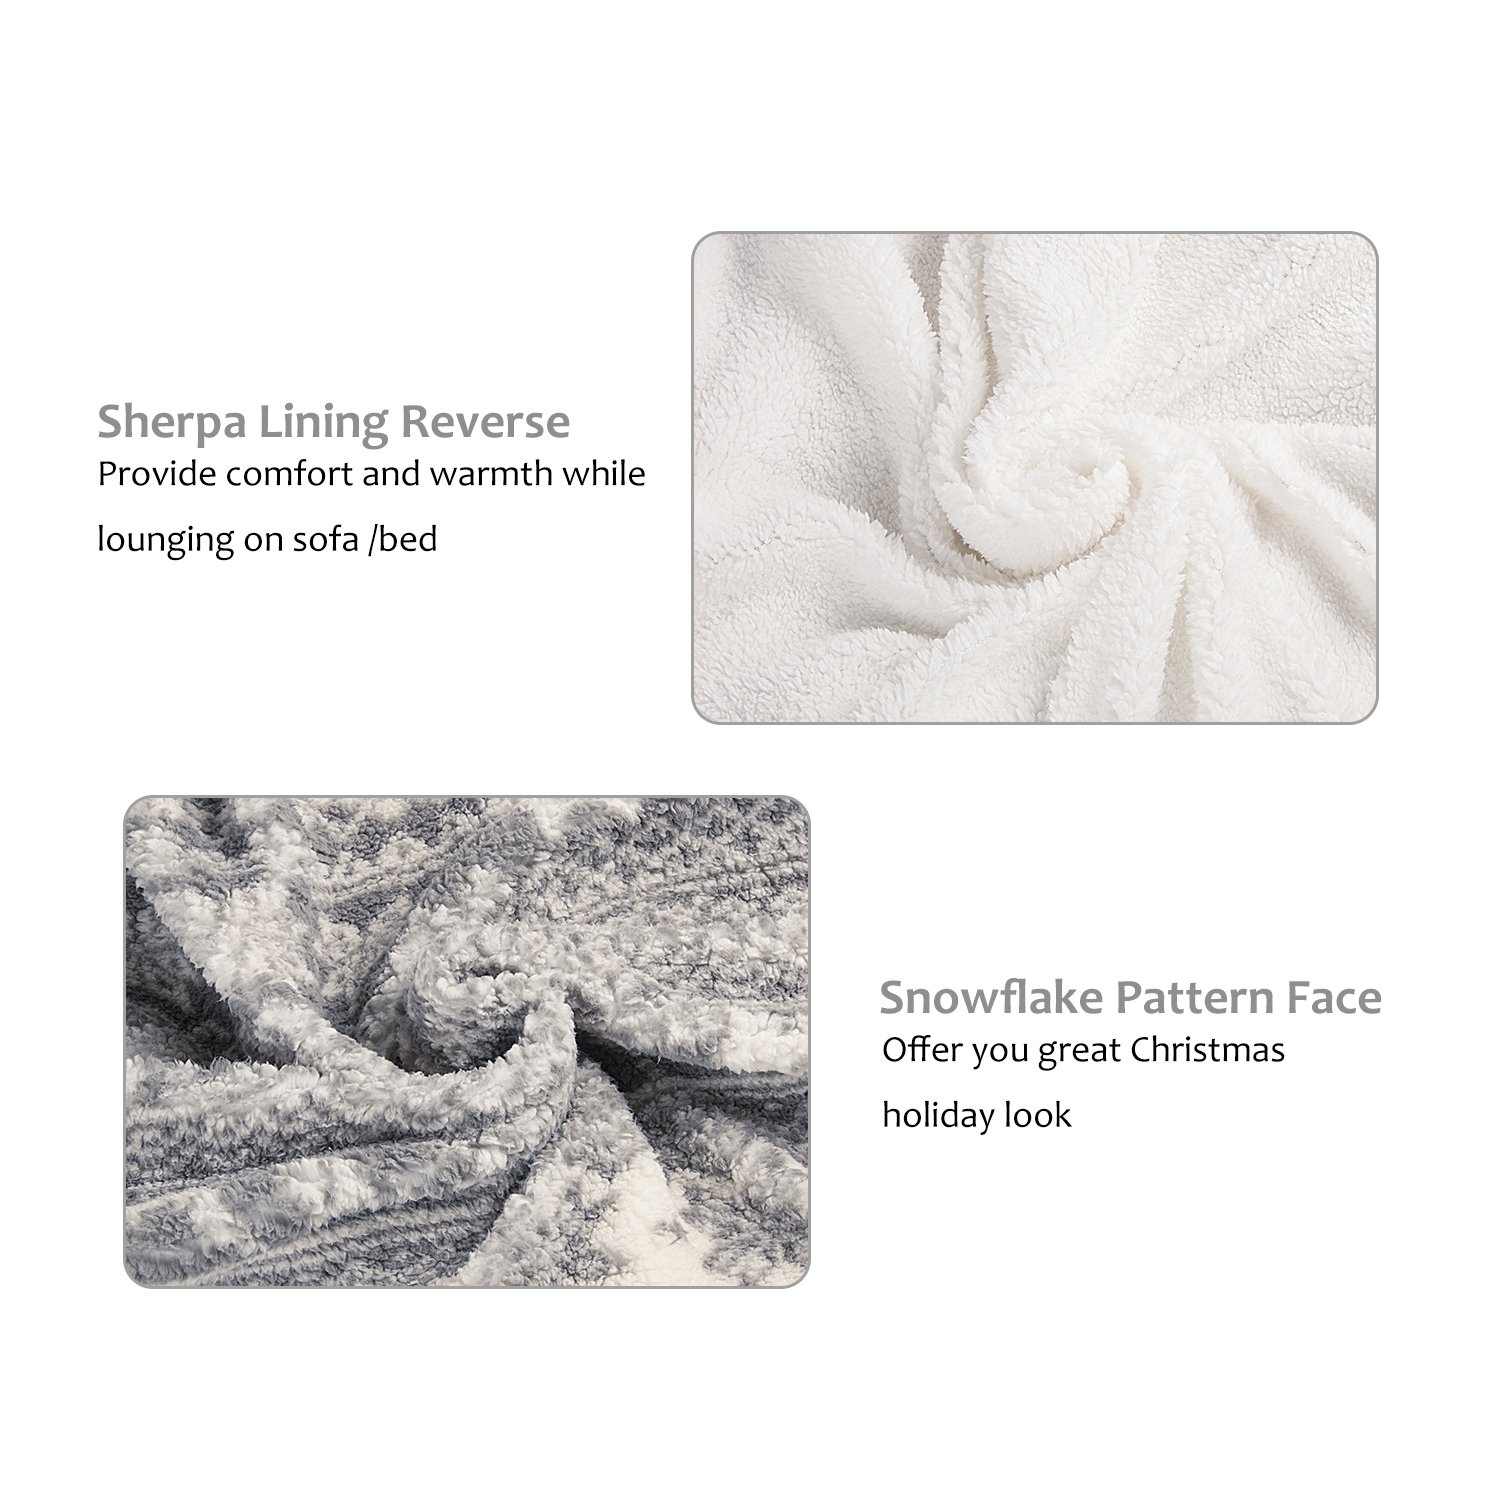 Snowflake Theme Sherpa Throw Blanket, Luxury Reversible Cozy Fleece Blanket, Warm Super Soft Comfort Caring Gift for Children and Adult, 155cm x 127cm, Grey by Catalonia